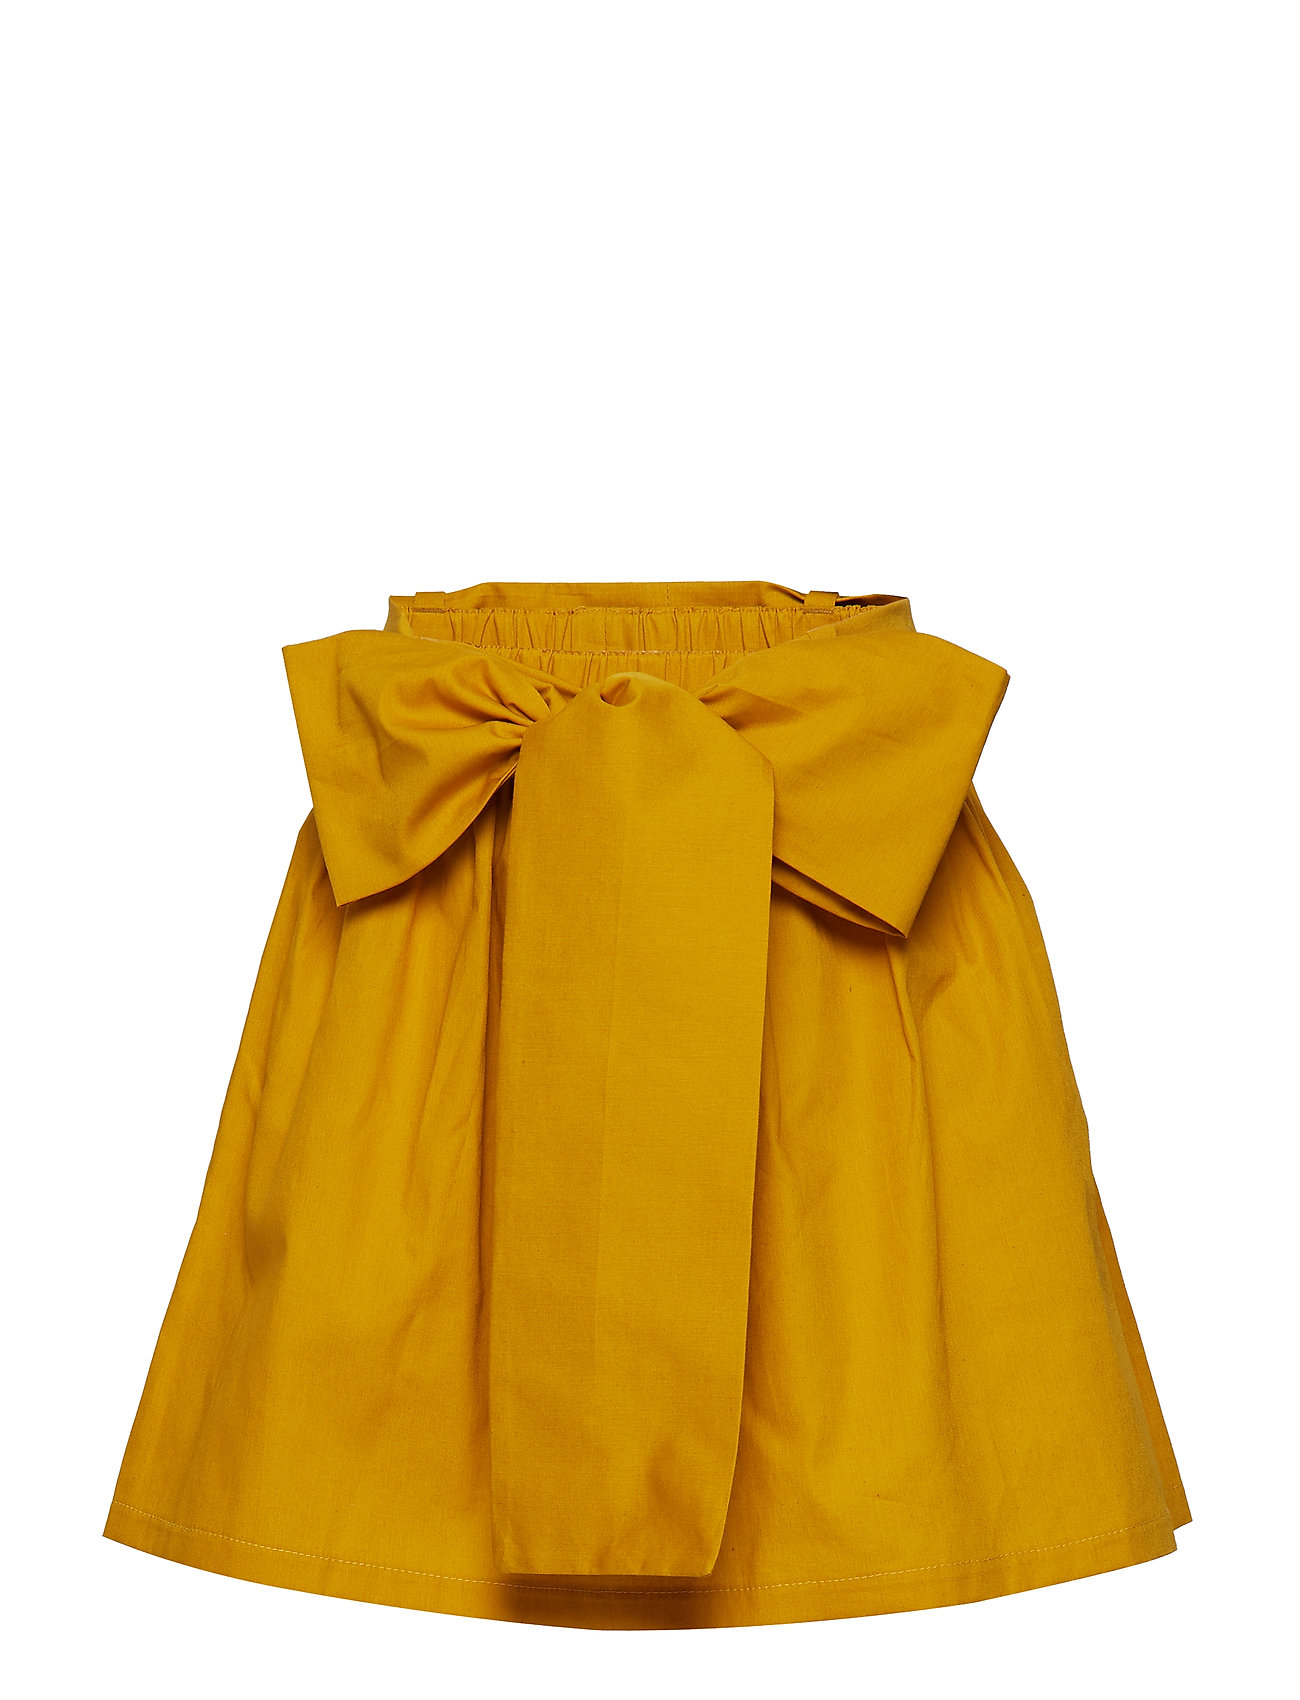 Christina Rohde Skirt No. 207 - MUSTARD YELLOW